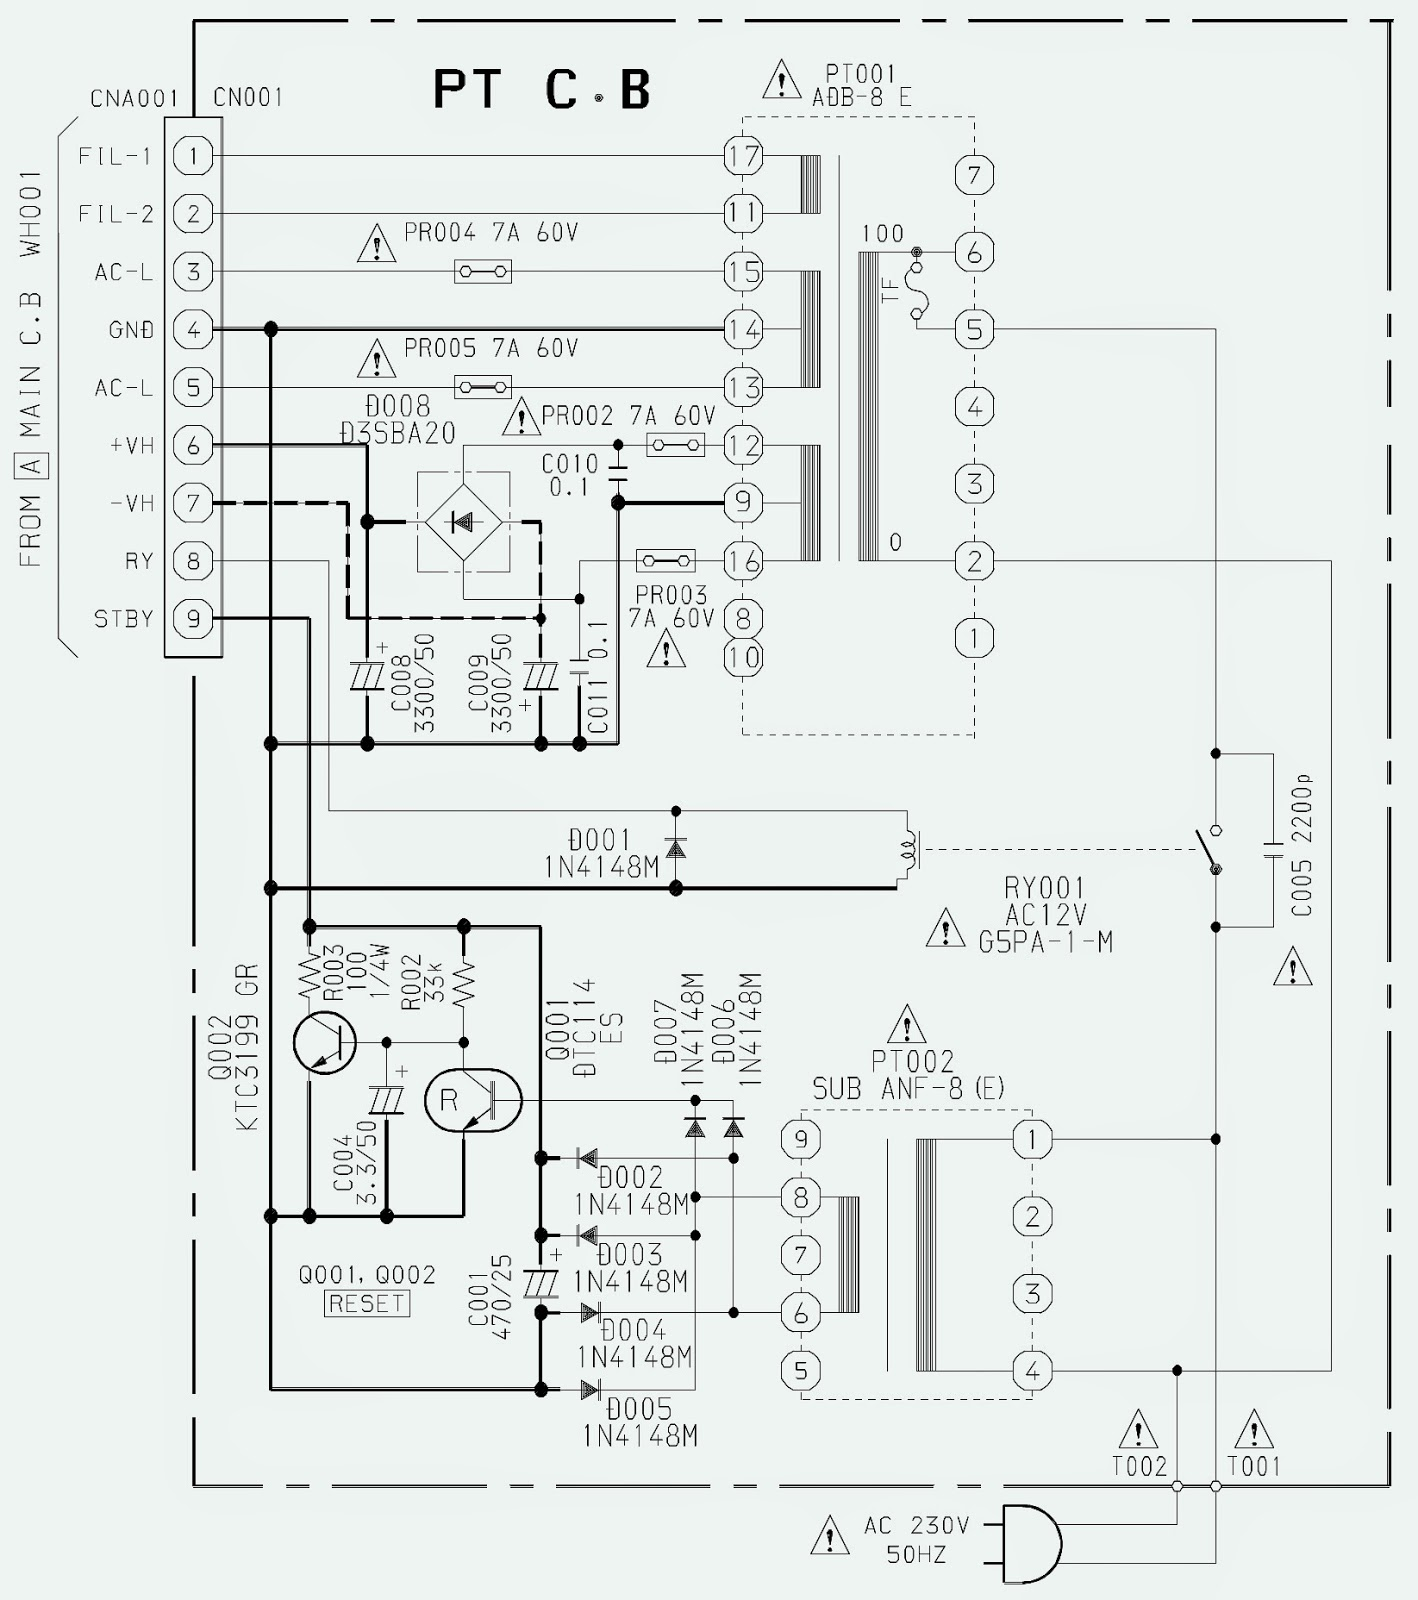 4 power.bmp aiwa xr hg5md md cd stereo system _ circuit diagram electro help aiwa cdc-x144 wiring diagram at aneh.co